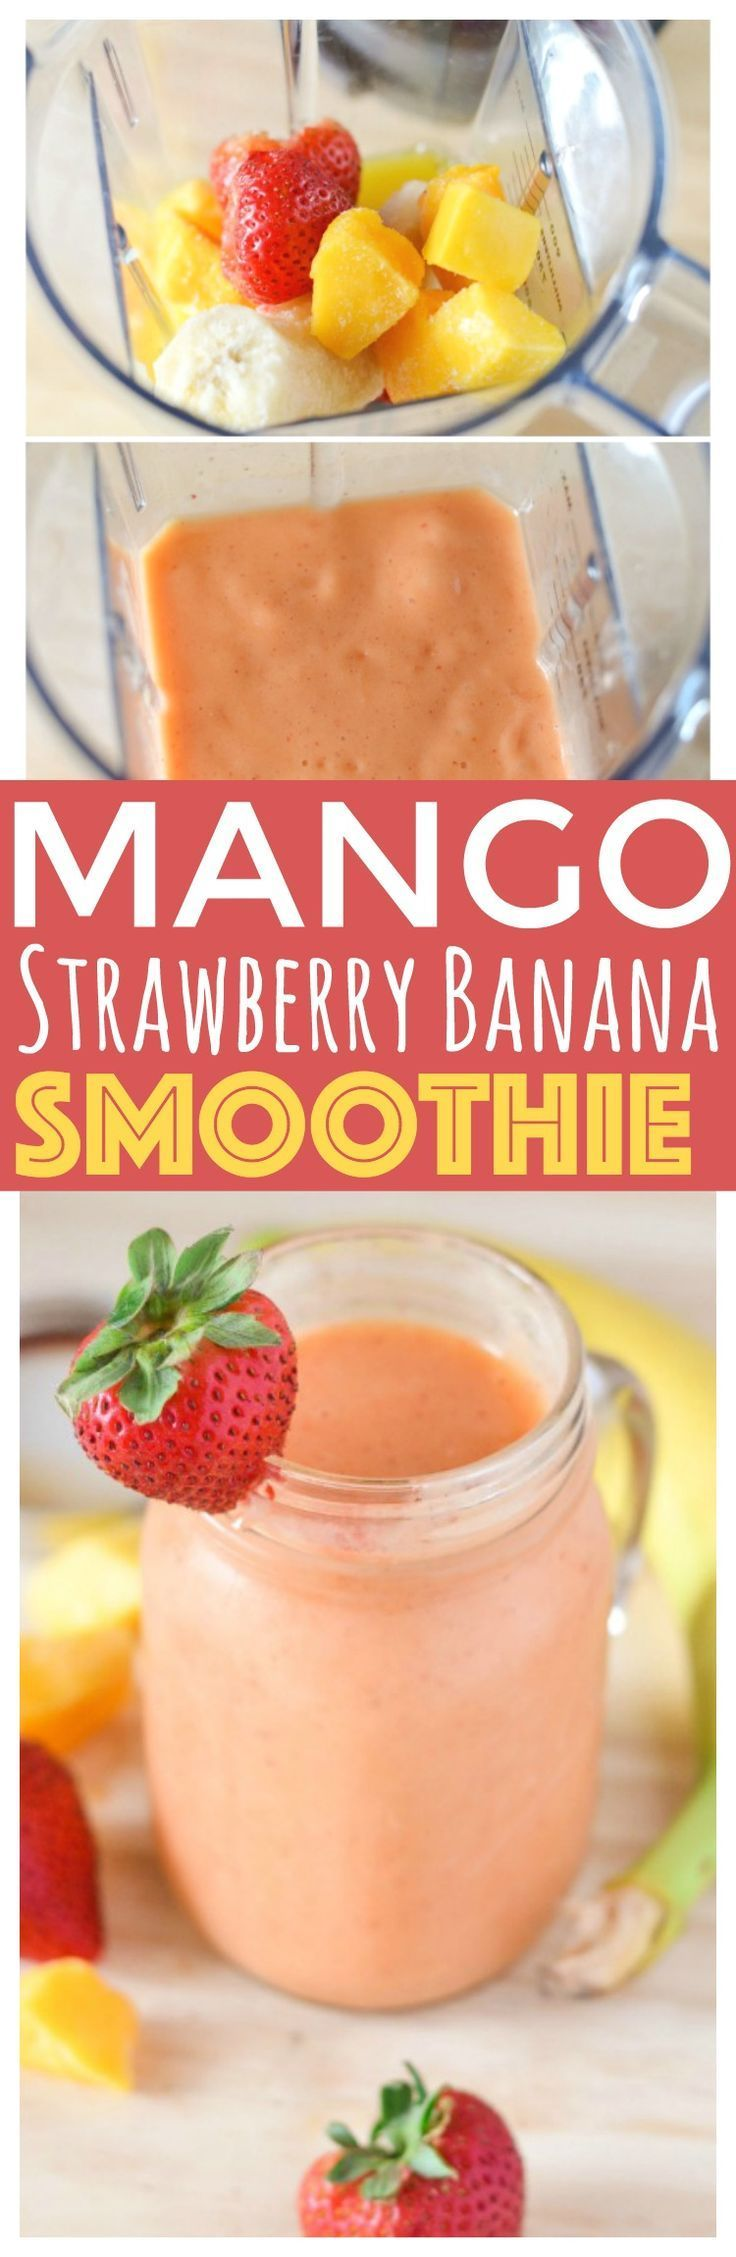 Quick and easy lunch, Mango Strawberry Banana Smoothie you can have a tasty and fulfilling lunch in less than 5 minutes serve healthy salad. via @CourtneysSweets